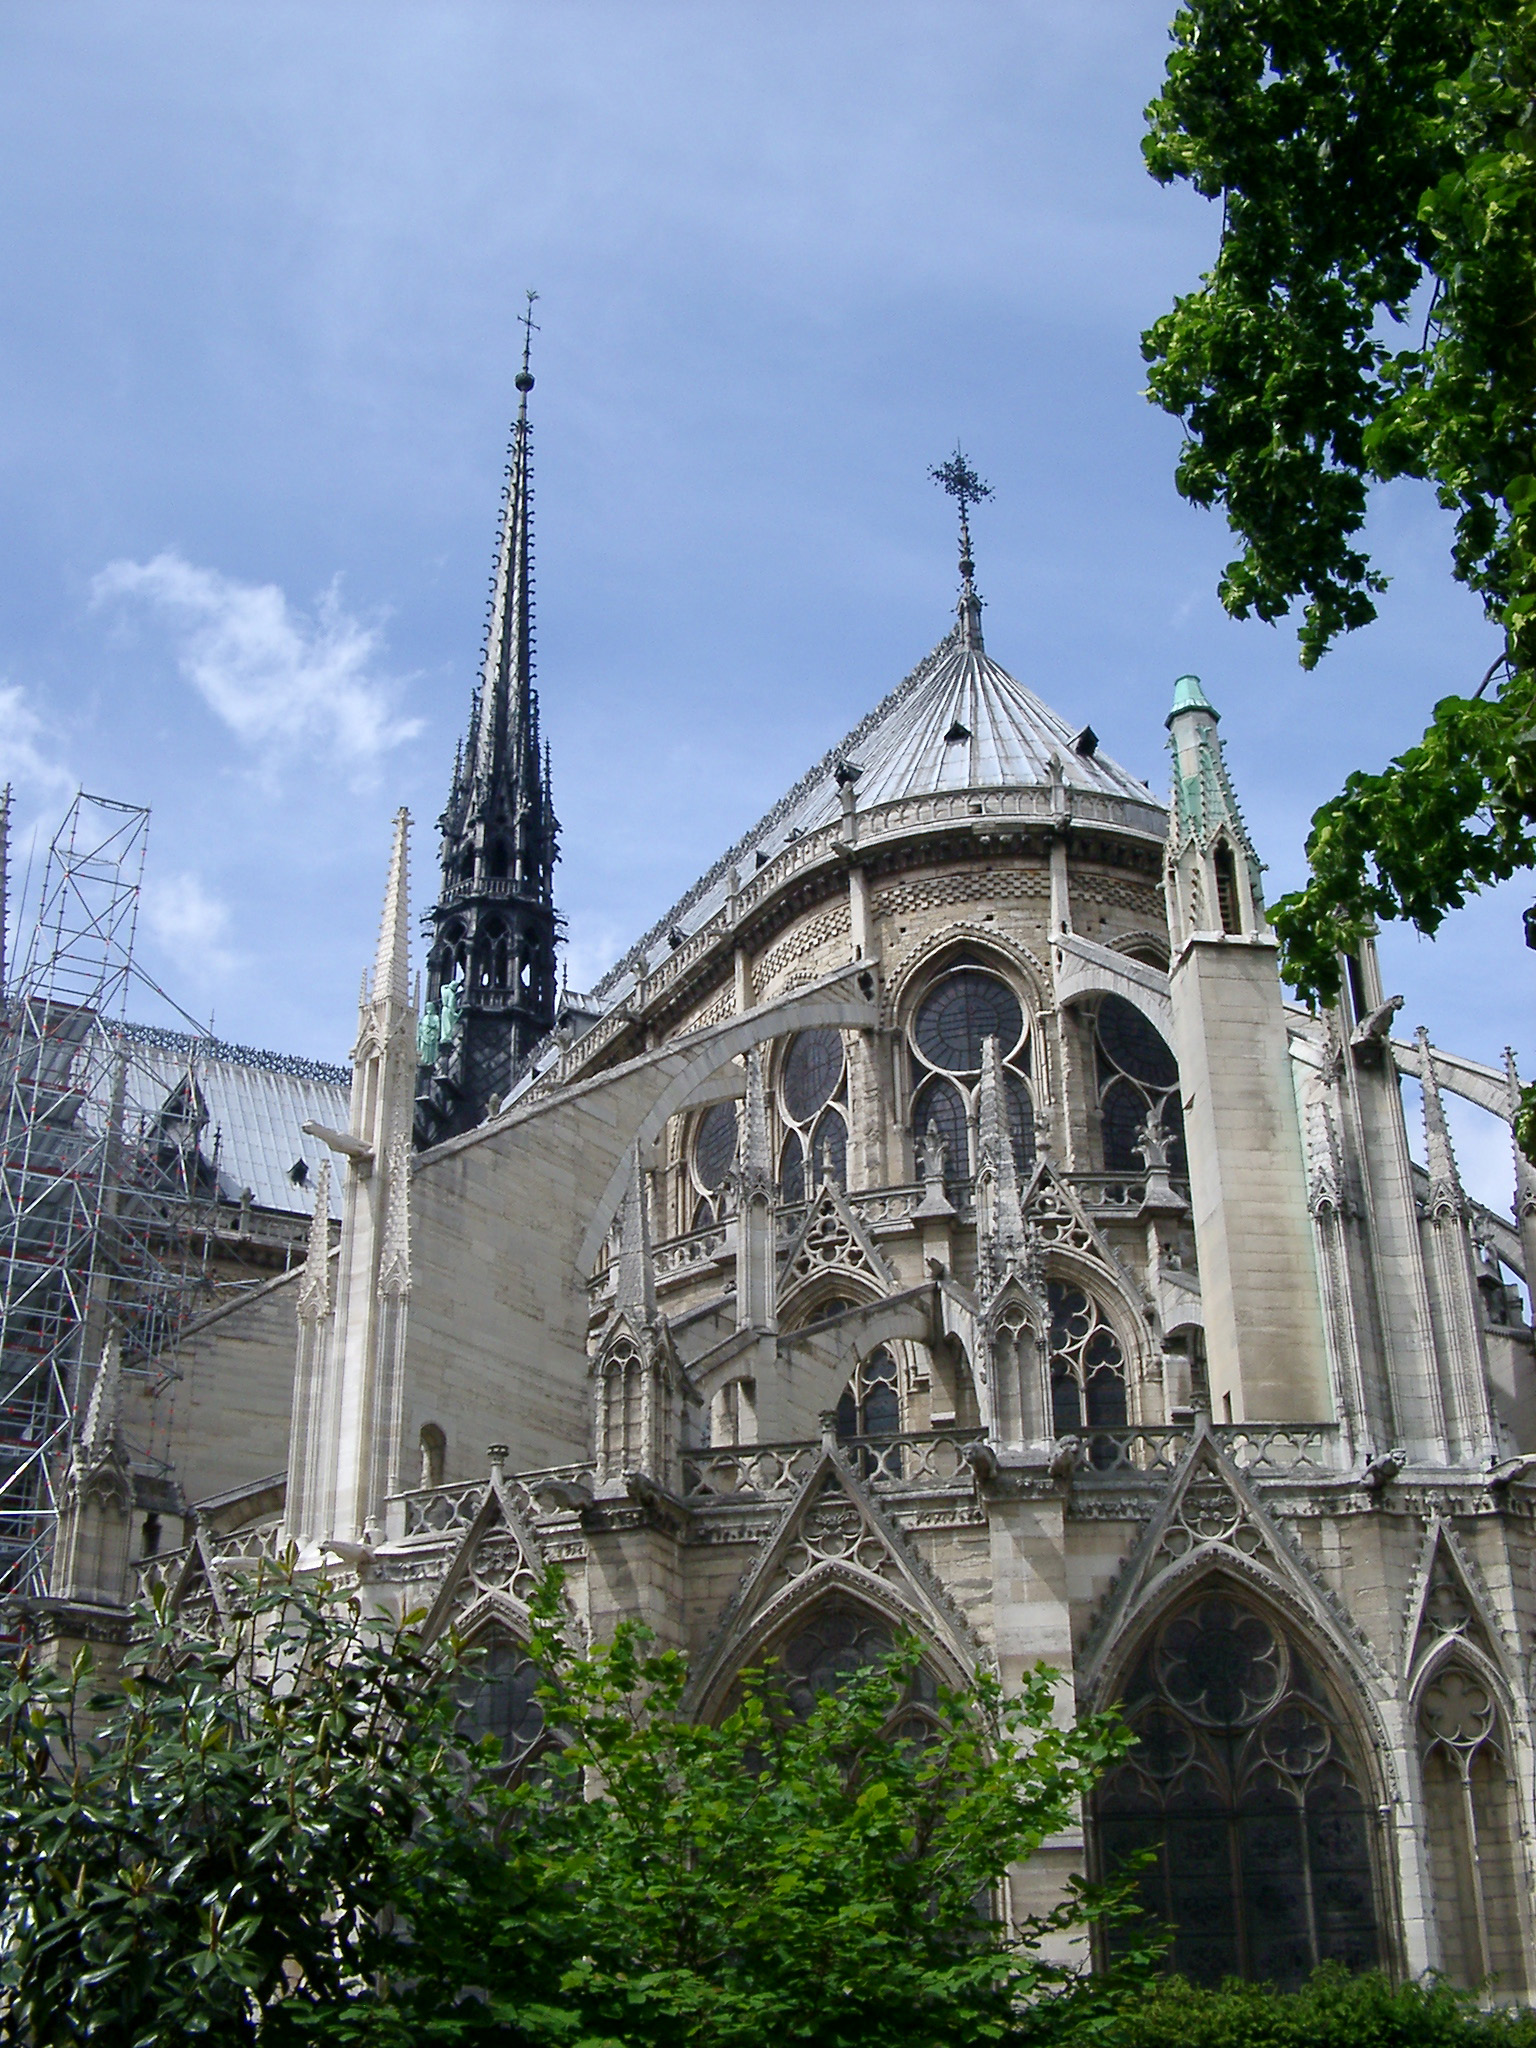 Exterior of Notre Dame Cathedral in Paris, France with Blue Sky